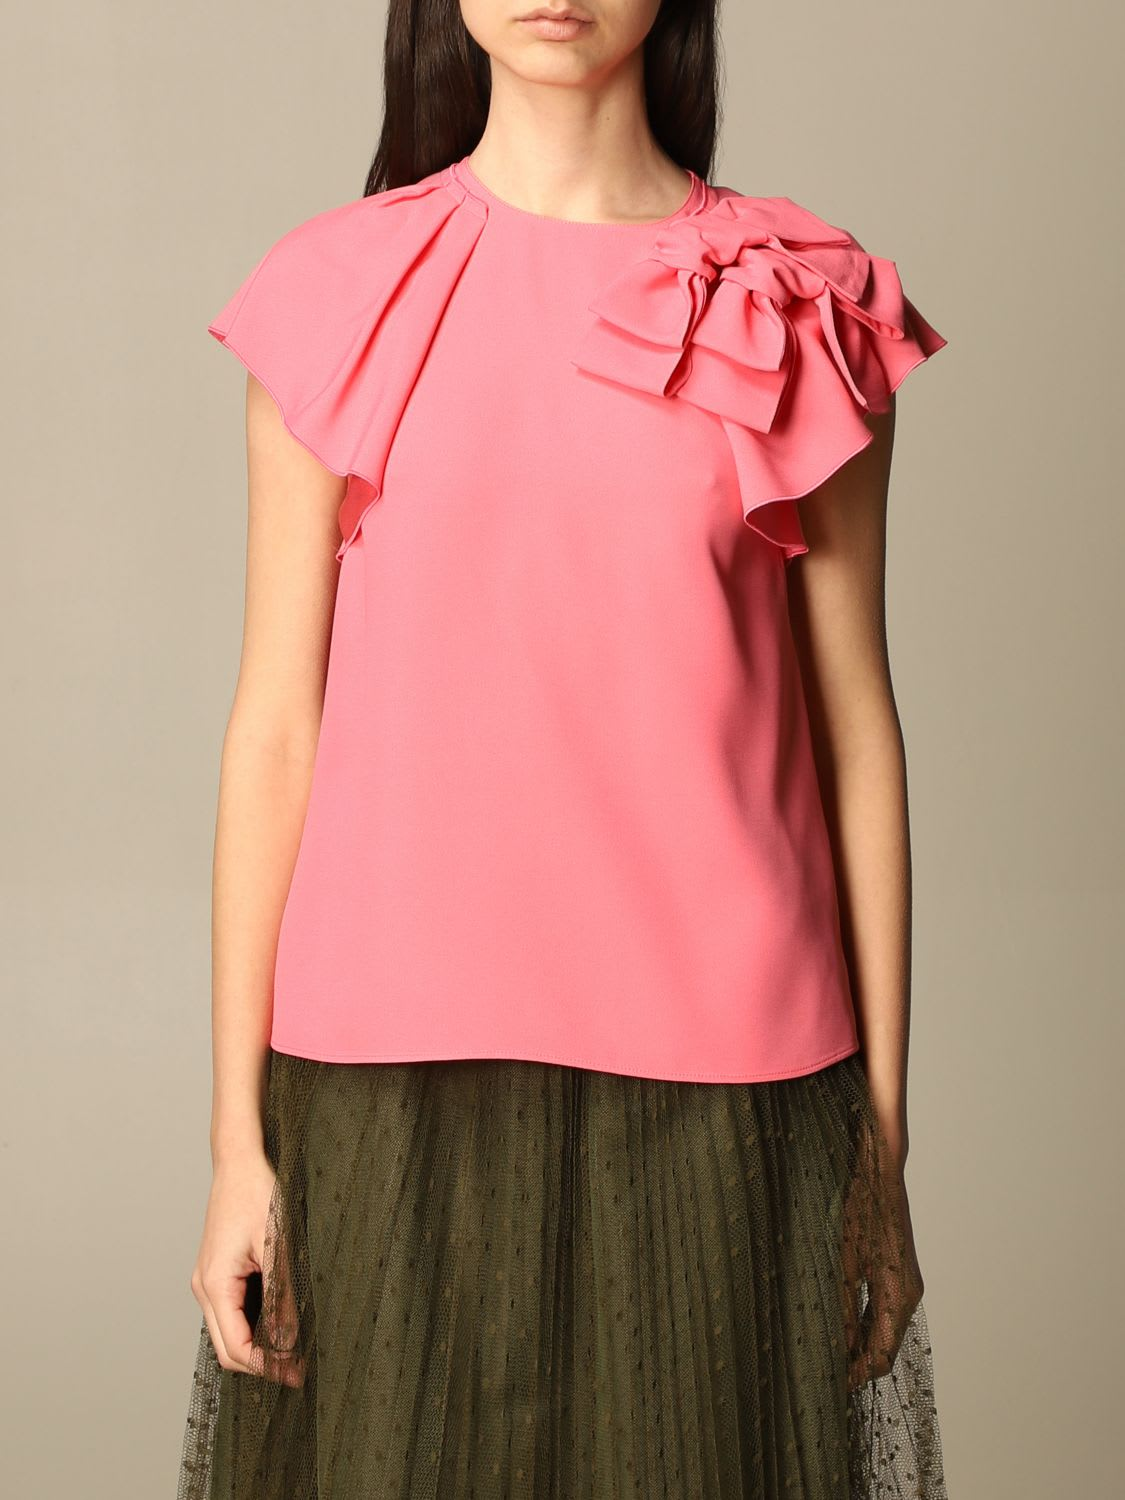 Red Valentino Top Red Valentino Satin Top With Ruffles